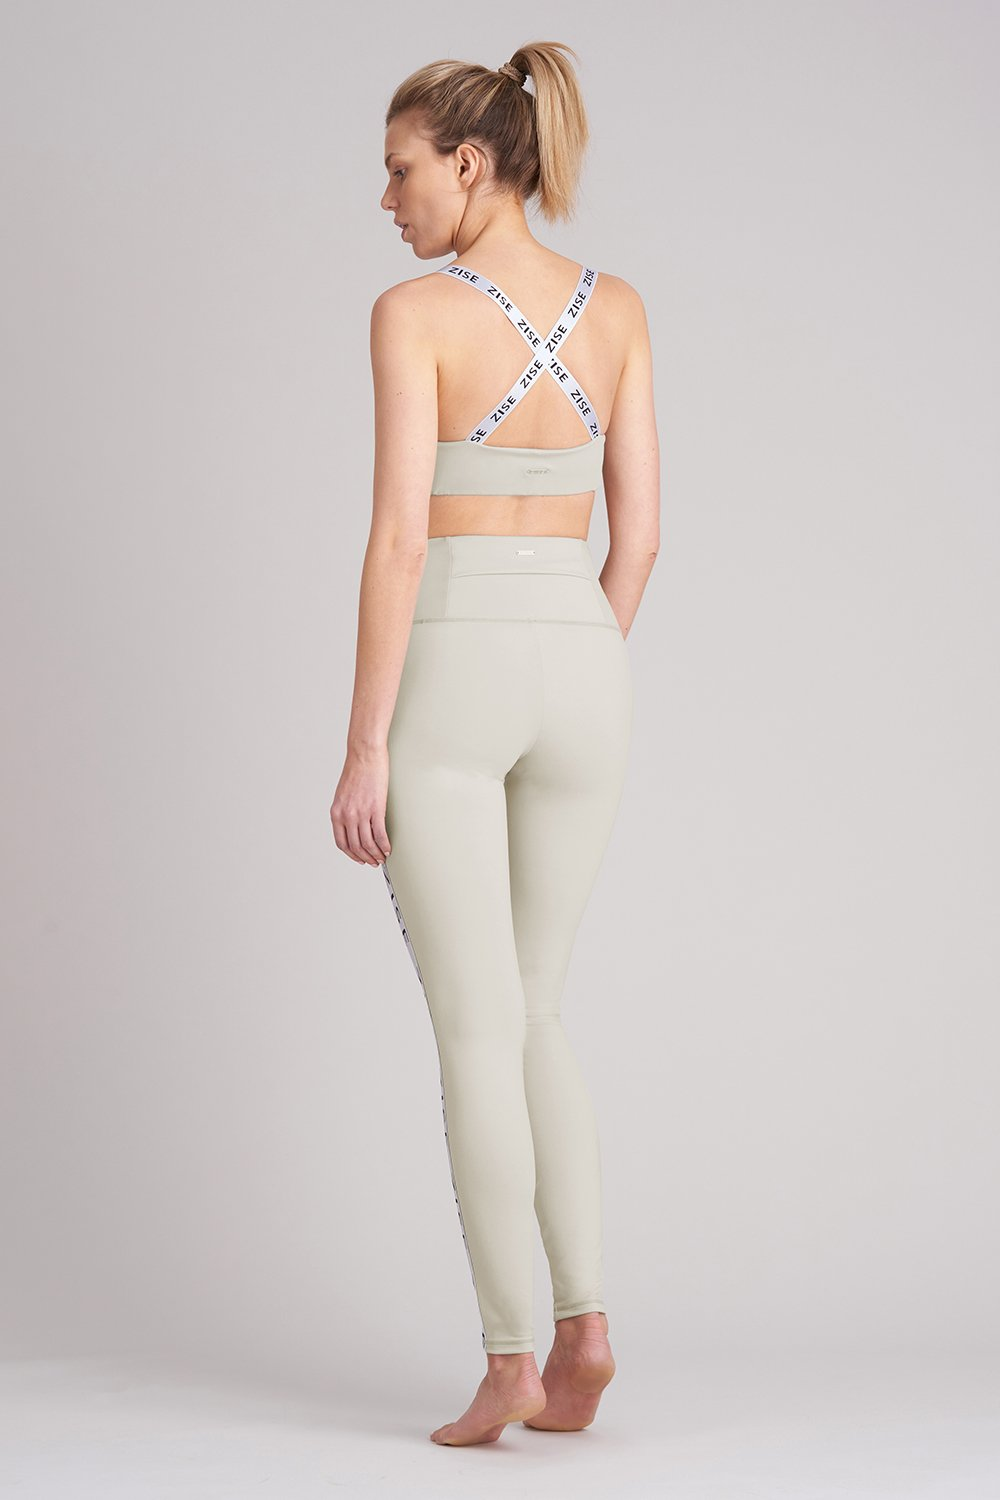 Zise Mimi Cross Back Crop Top - BLOCH US